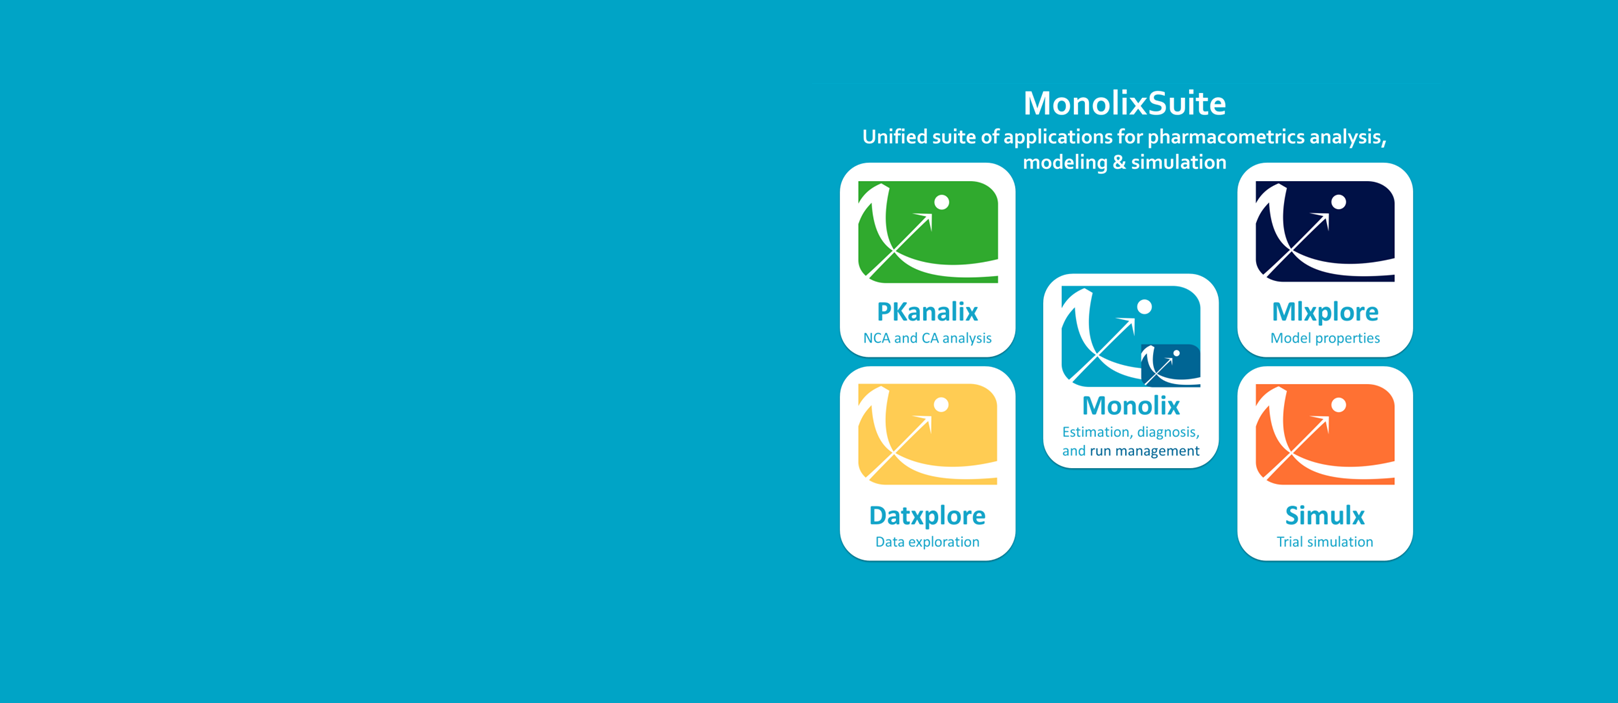 MonolixSuite Workshop (Guangzhou, China,  Fri. November 8th, 2019)